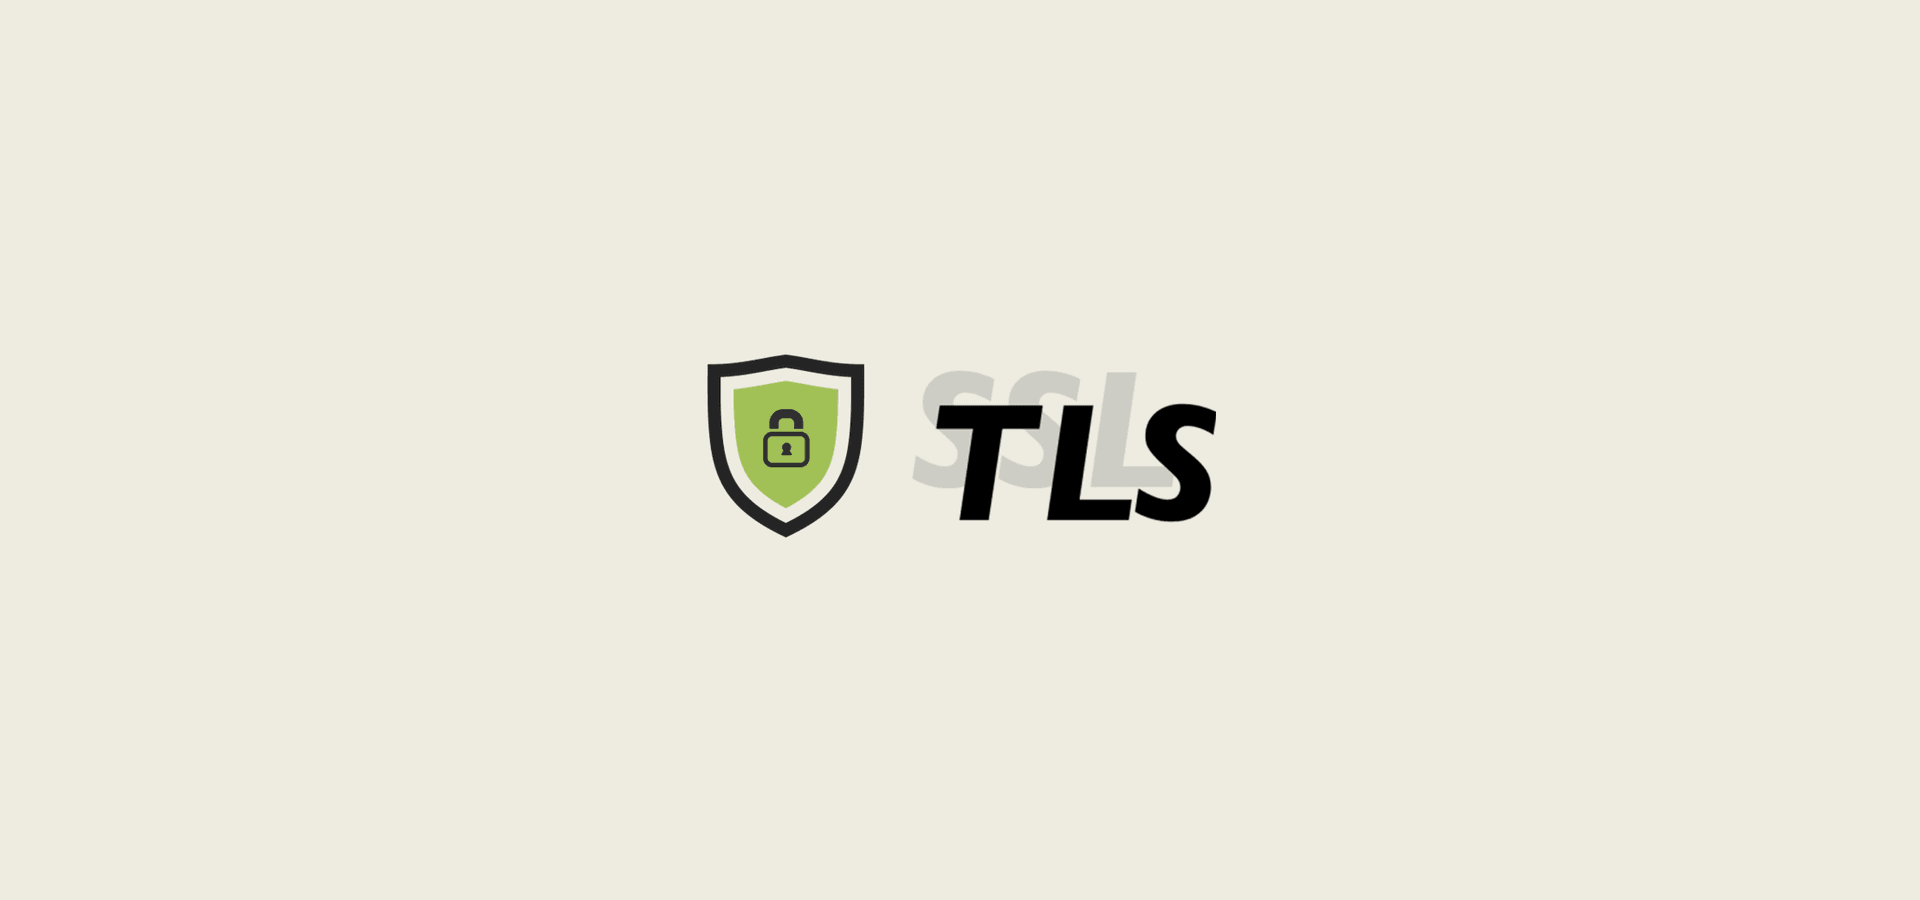 Early TLS to be disabled across all WebHotelier products and services on June 30th, 2018